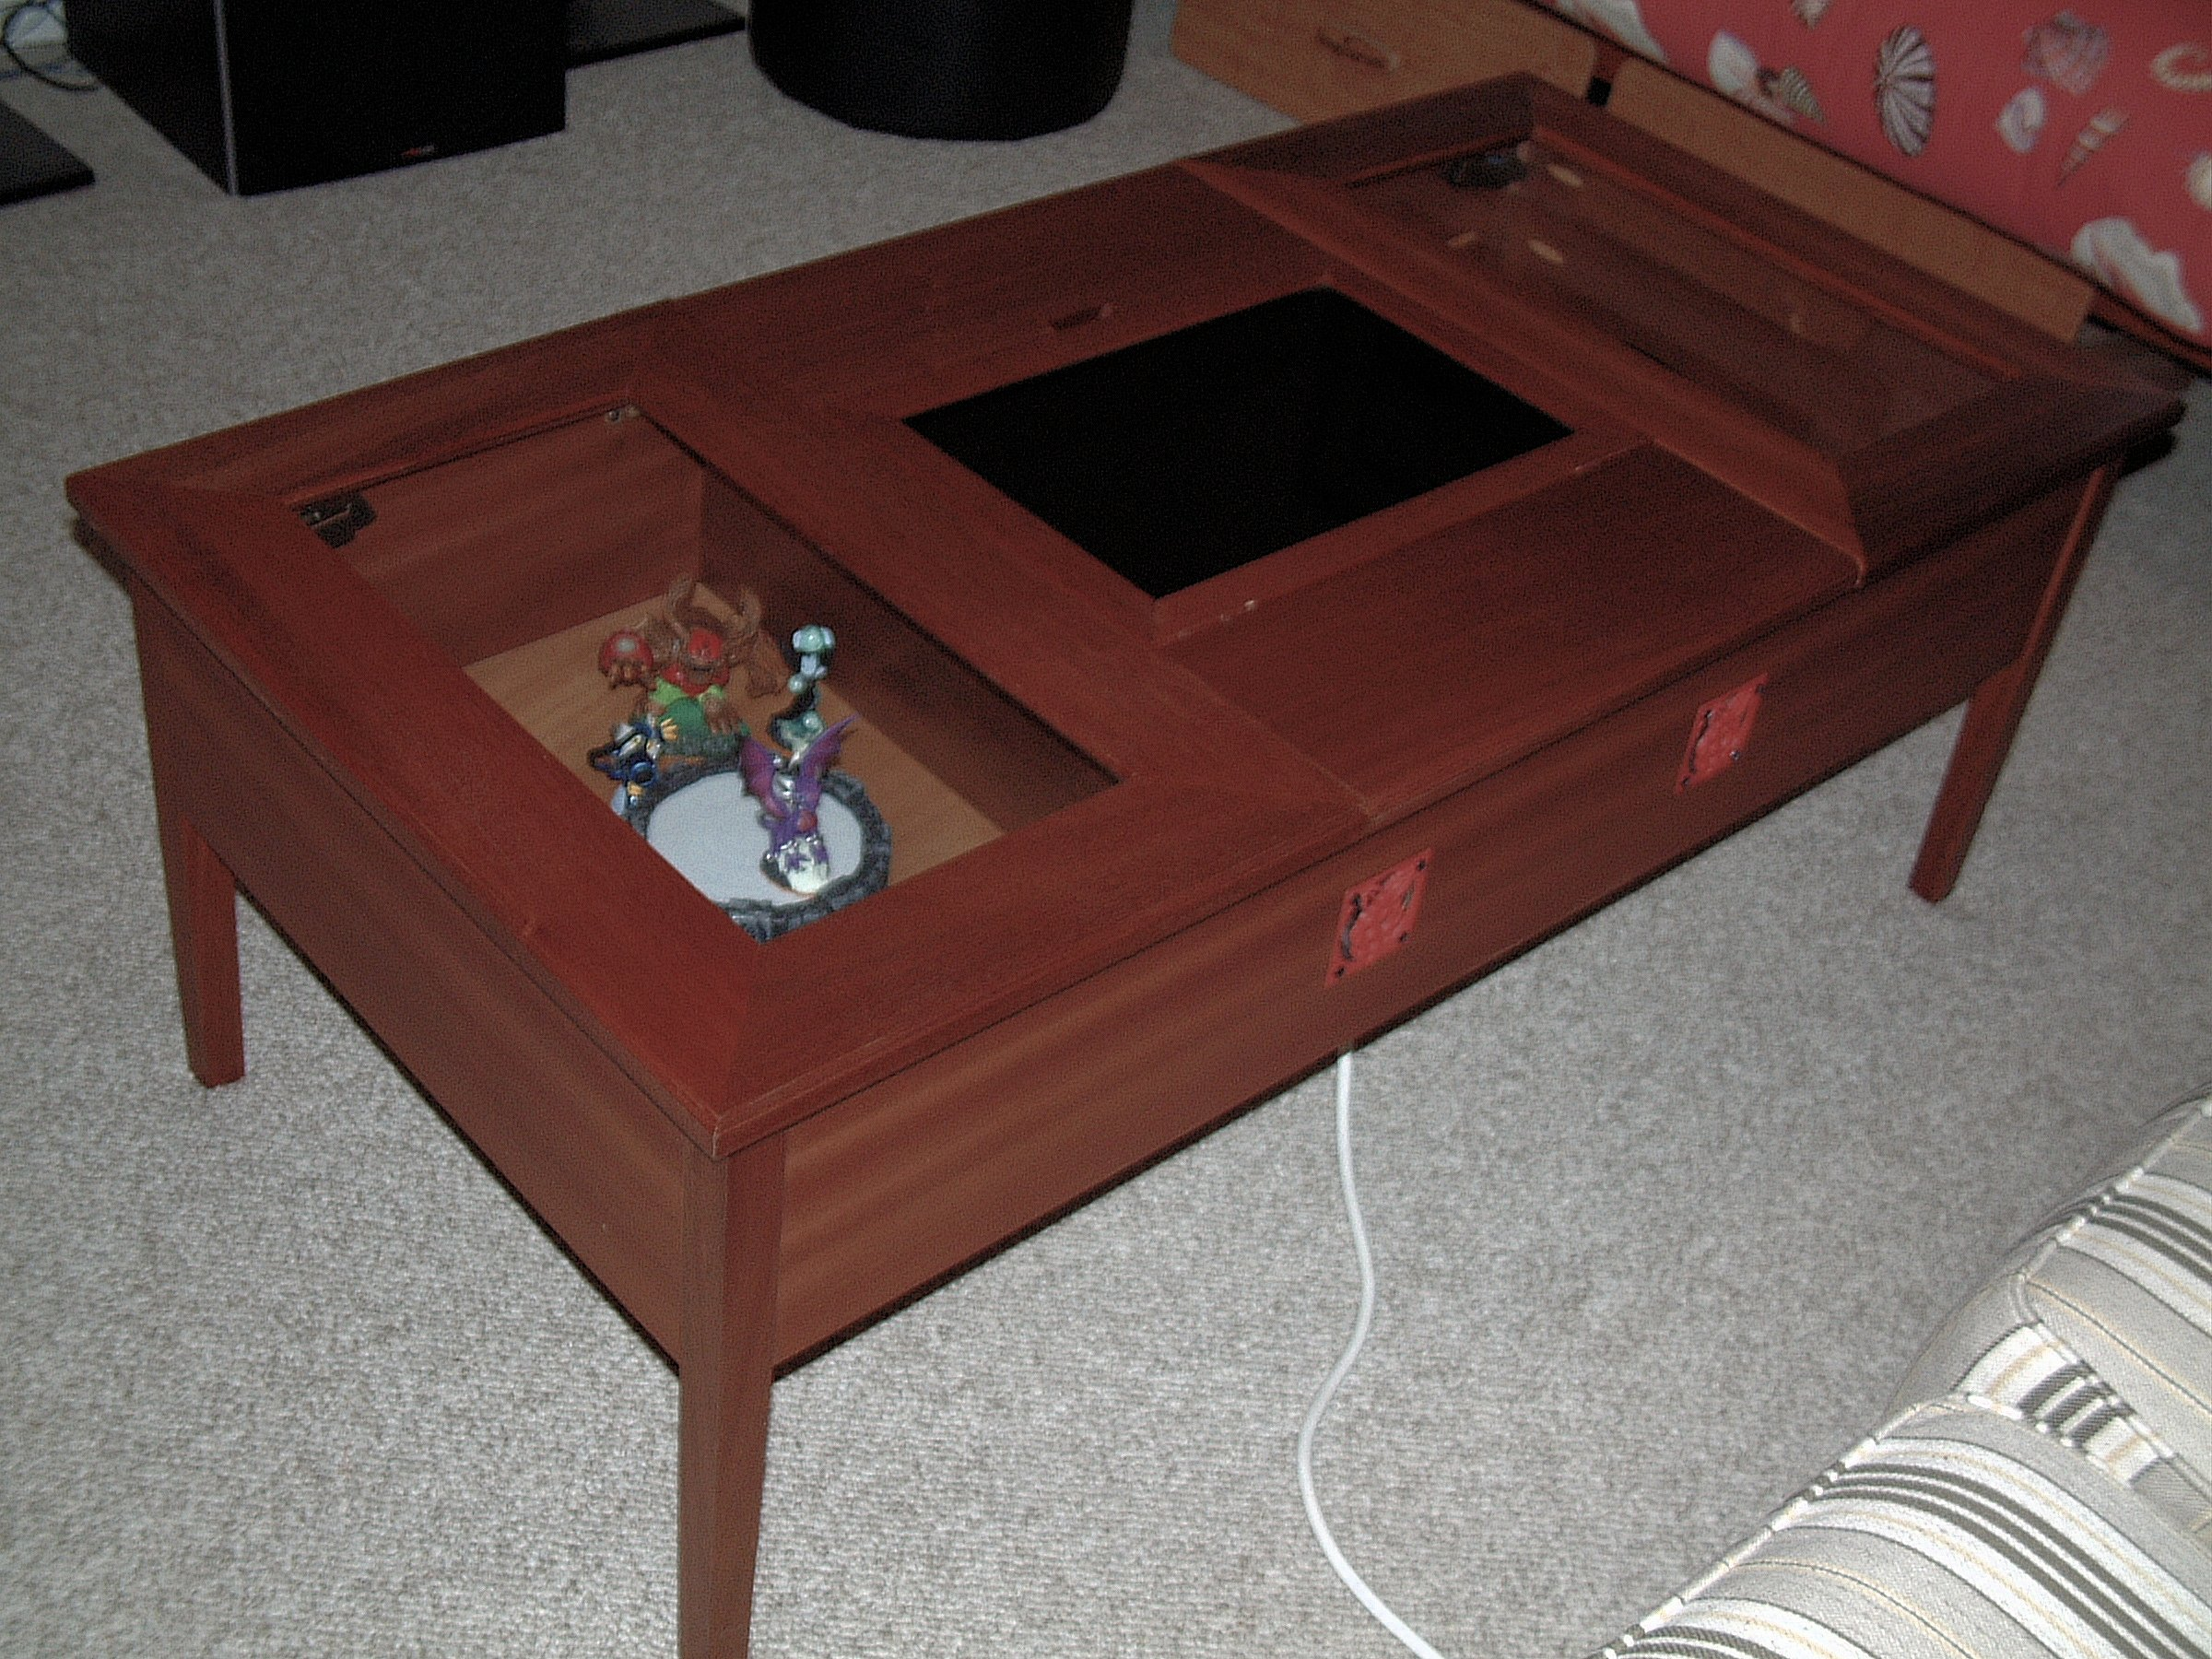 Raspberry Pi Table